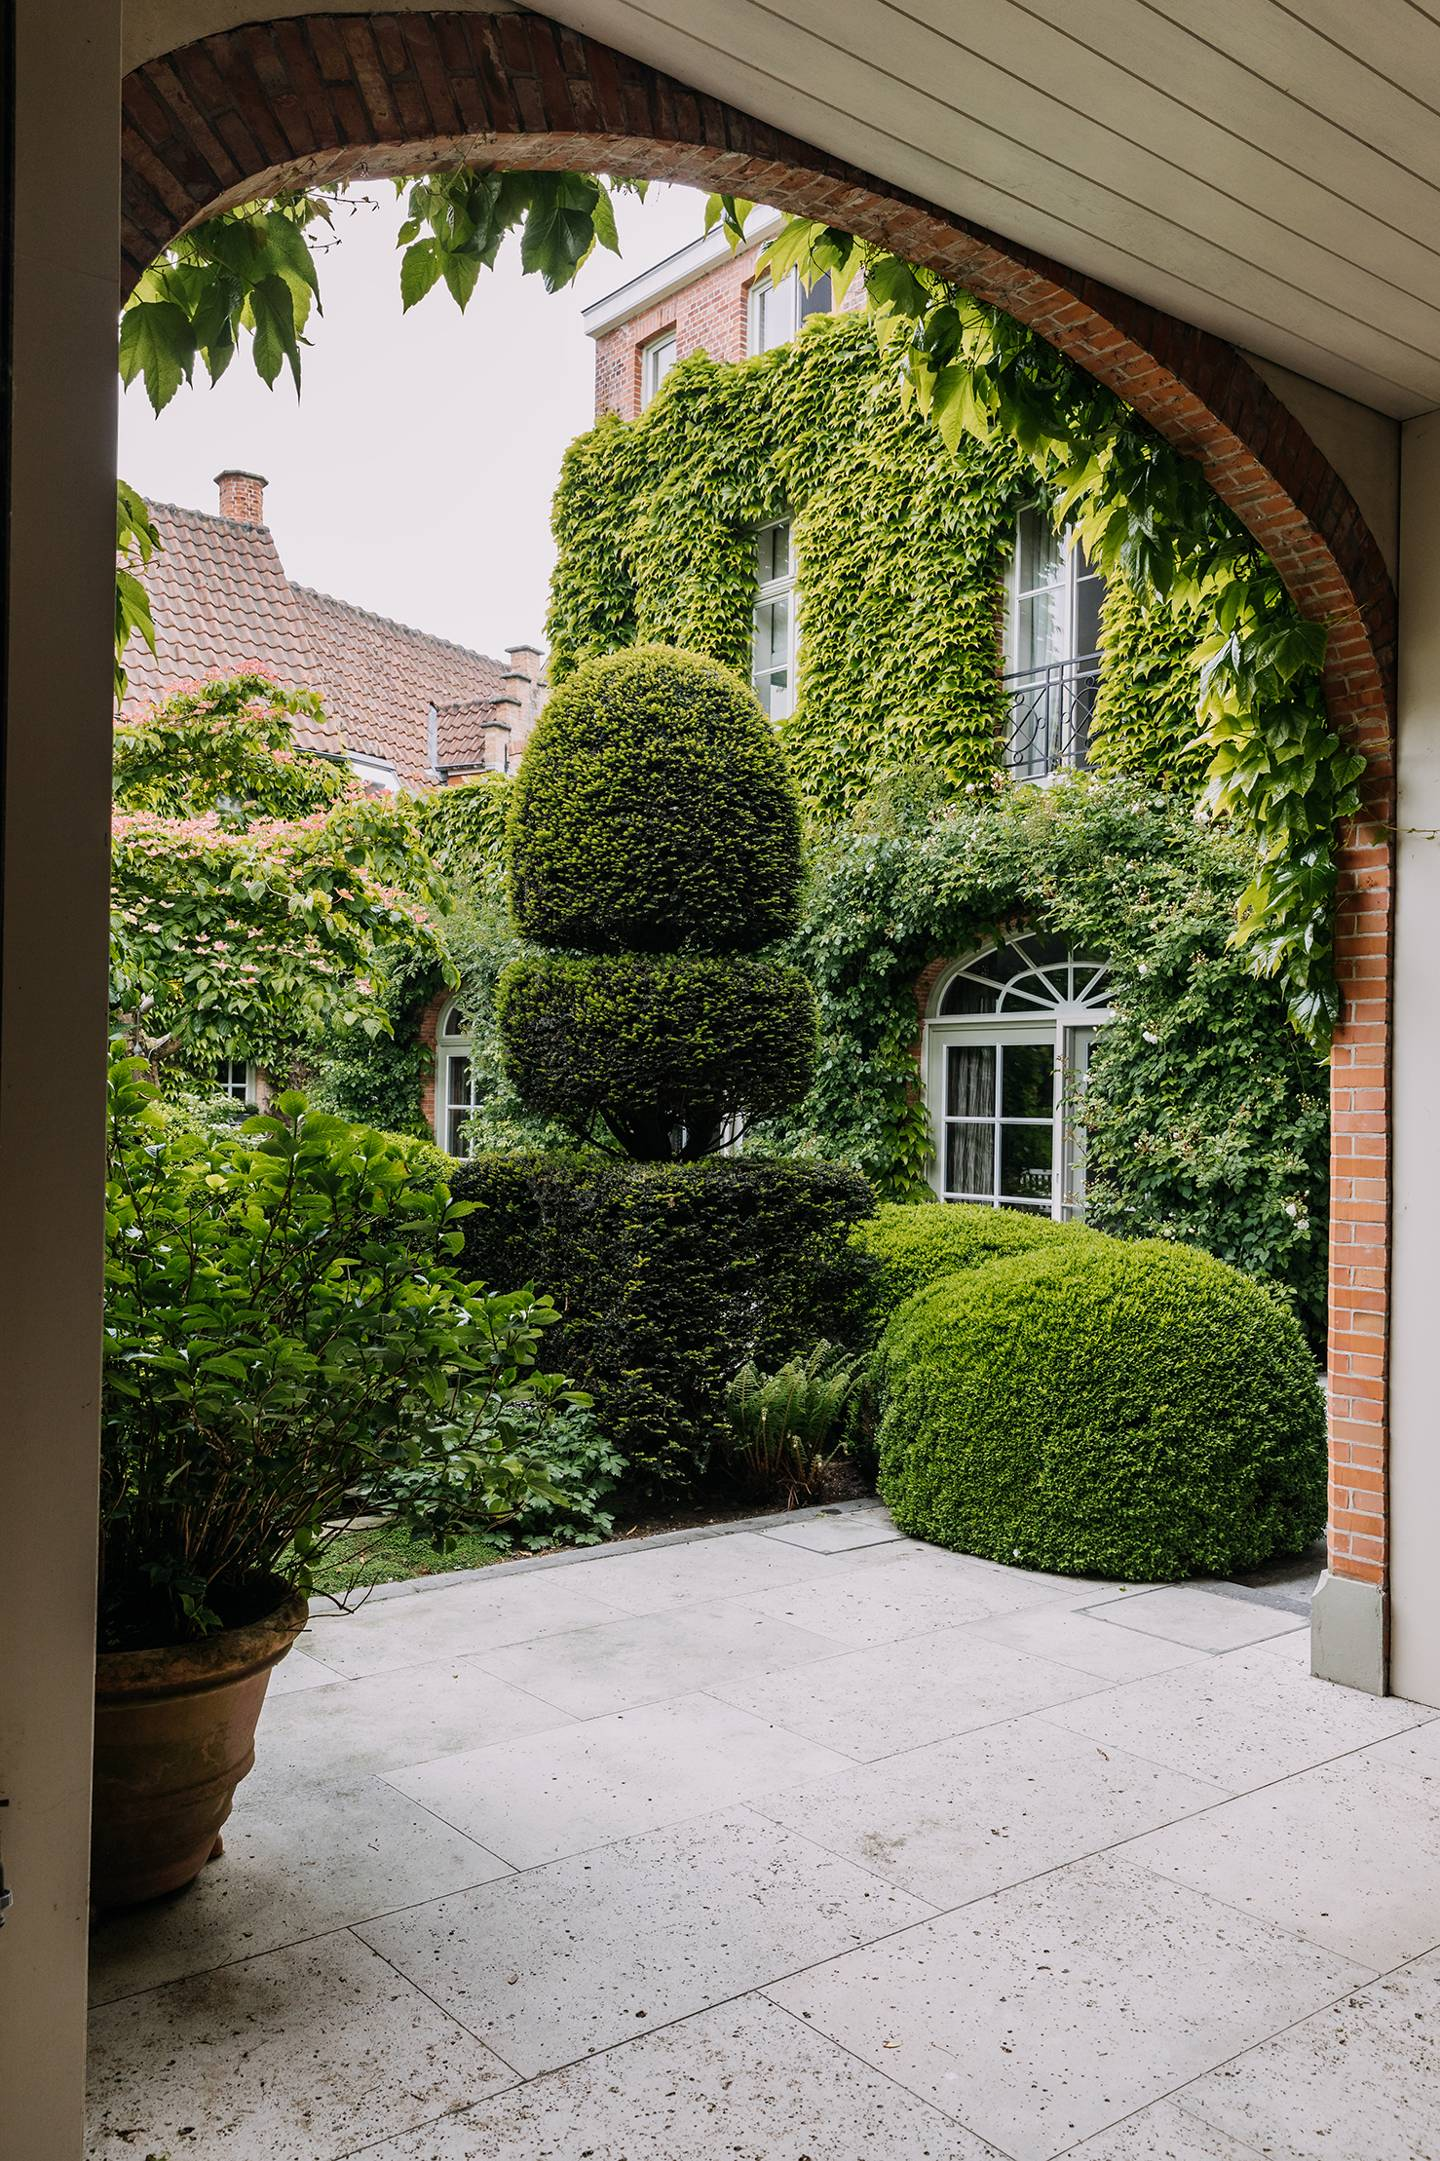 The magnificent garden of a townhouse in Bruges, designed by Piet Blanckaert